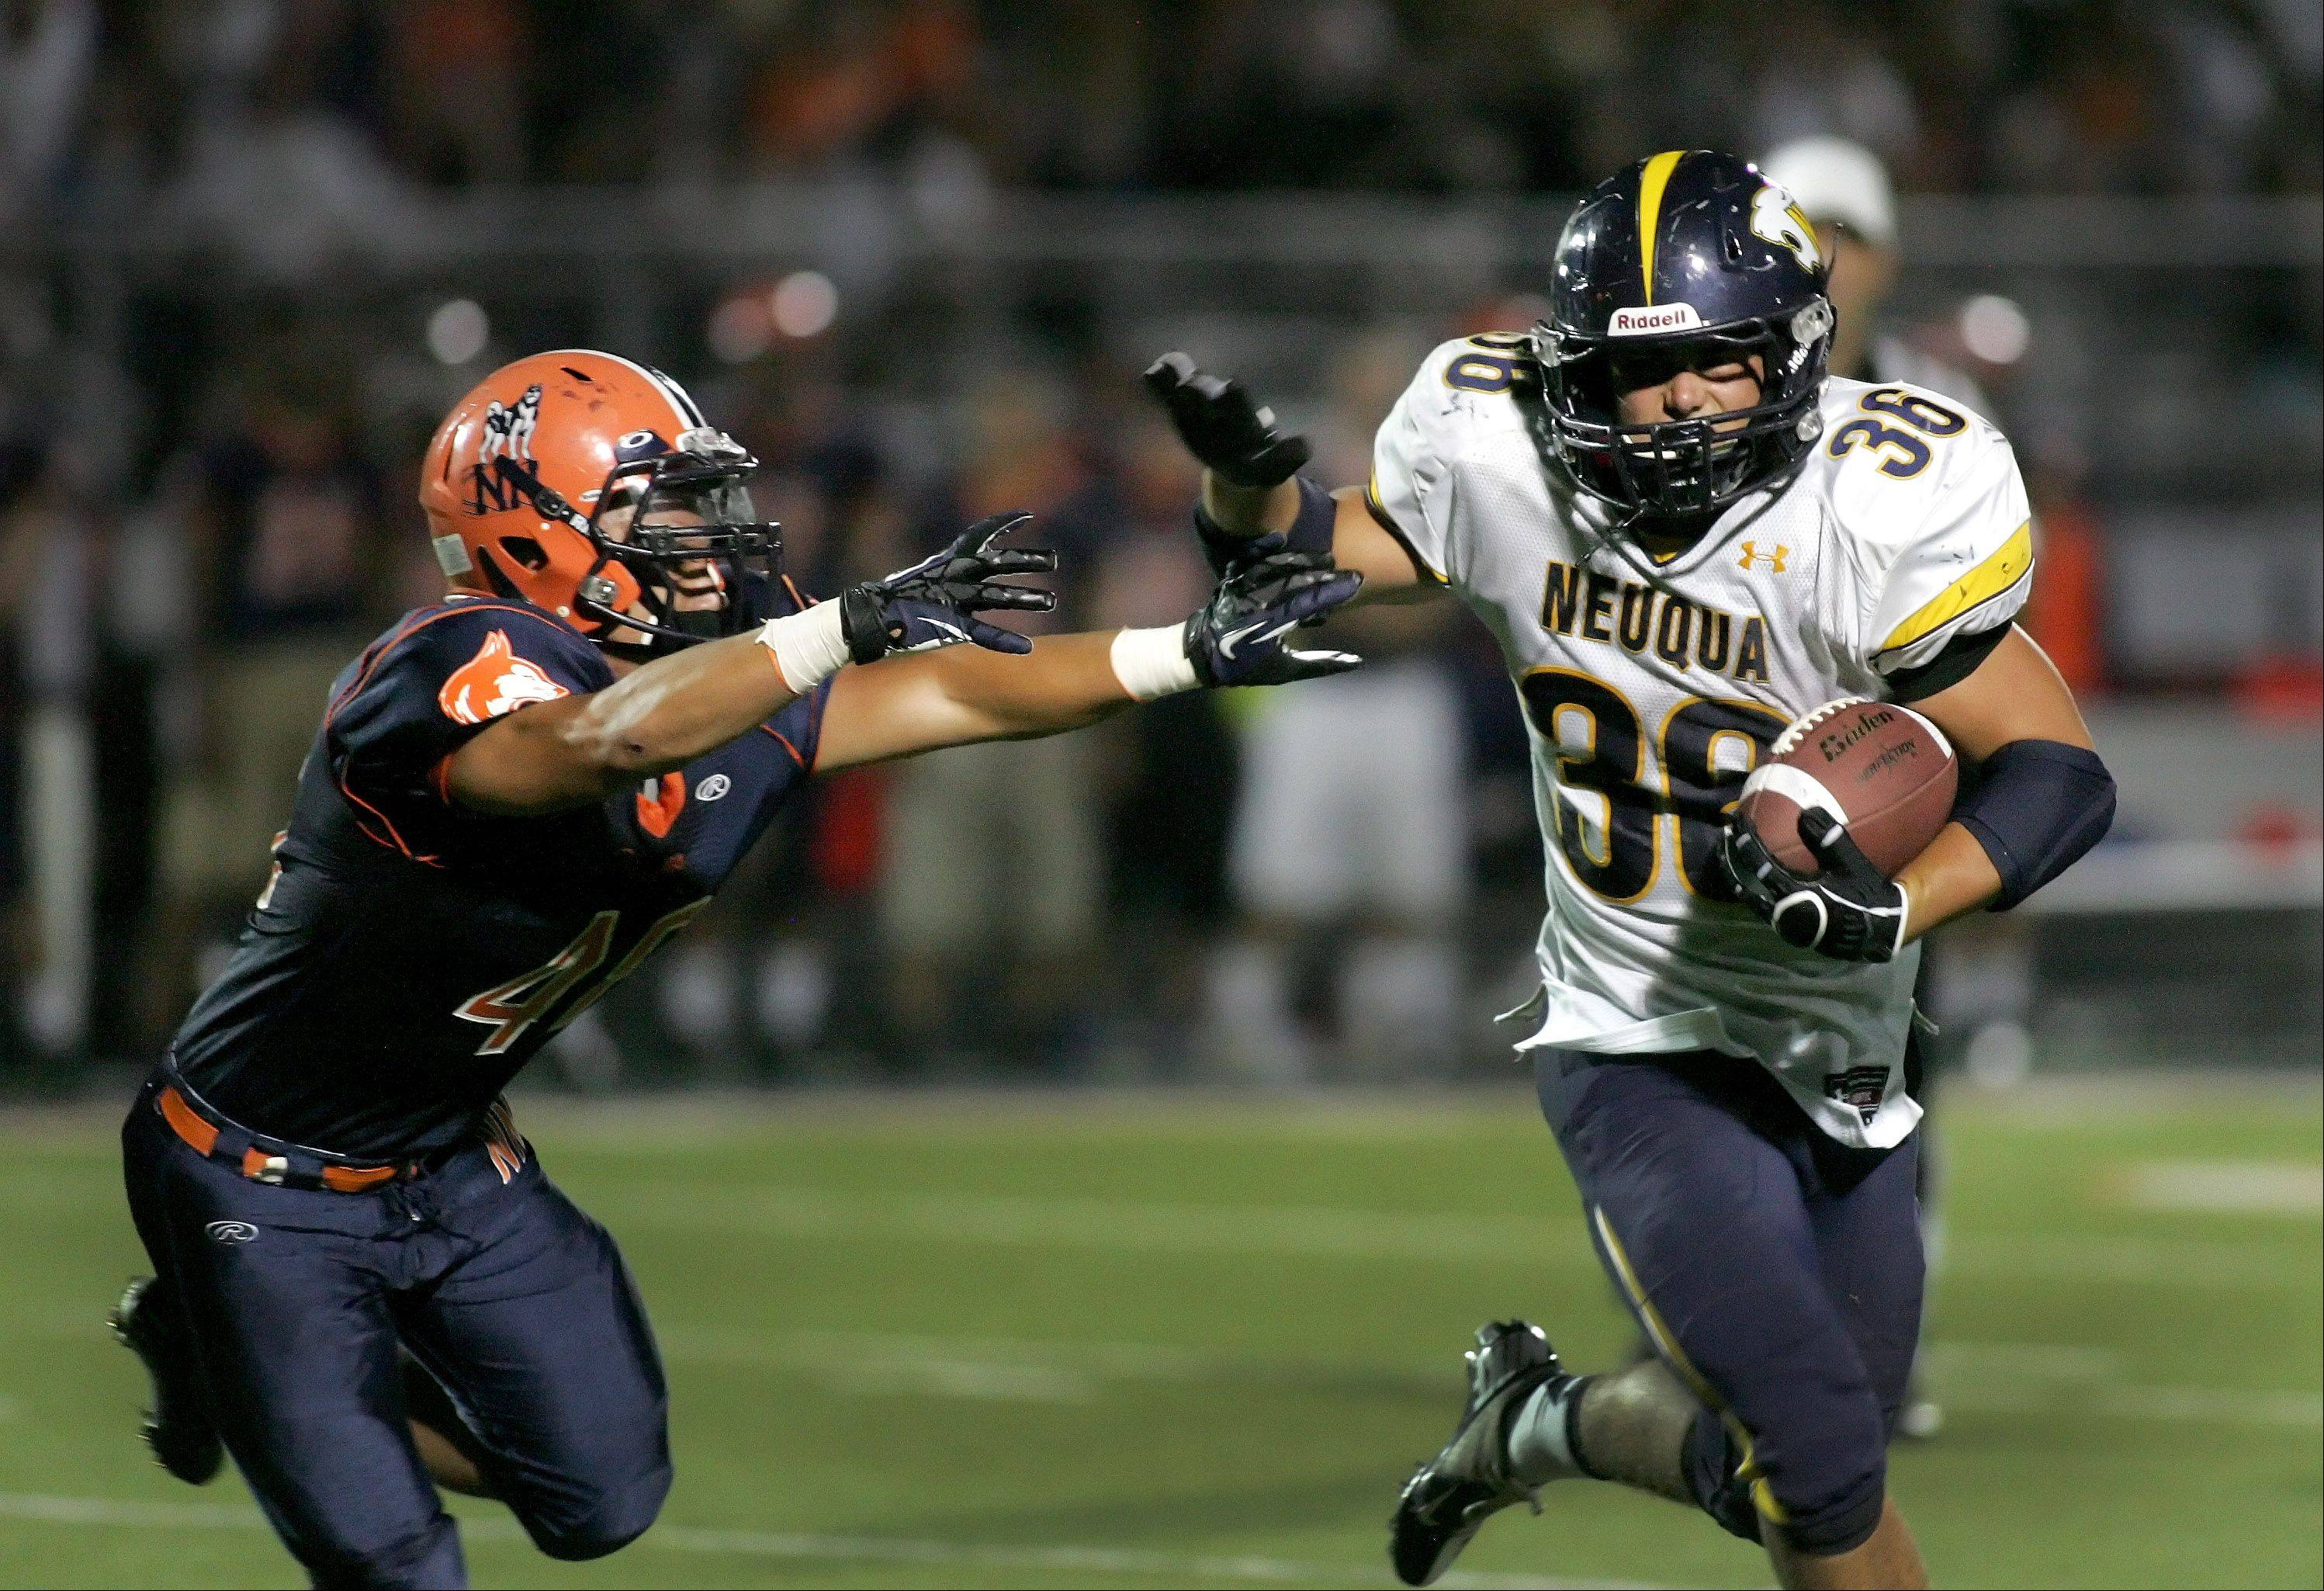 Joey Rhattigan of Neuqua Valley, right, holds off Eric Montgomery, left, of Naperville North.